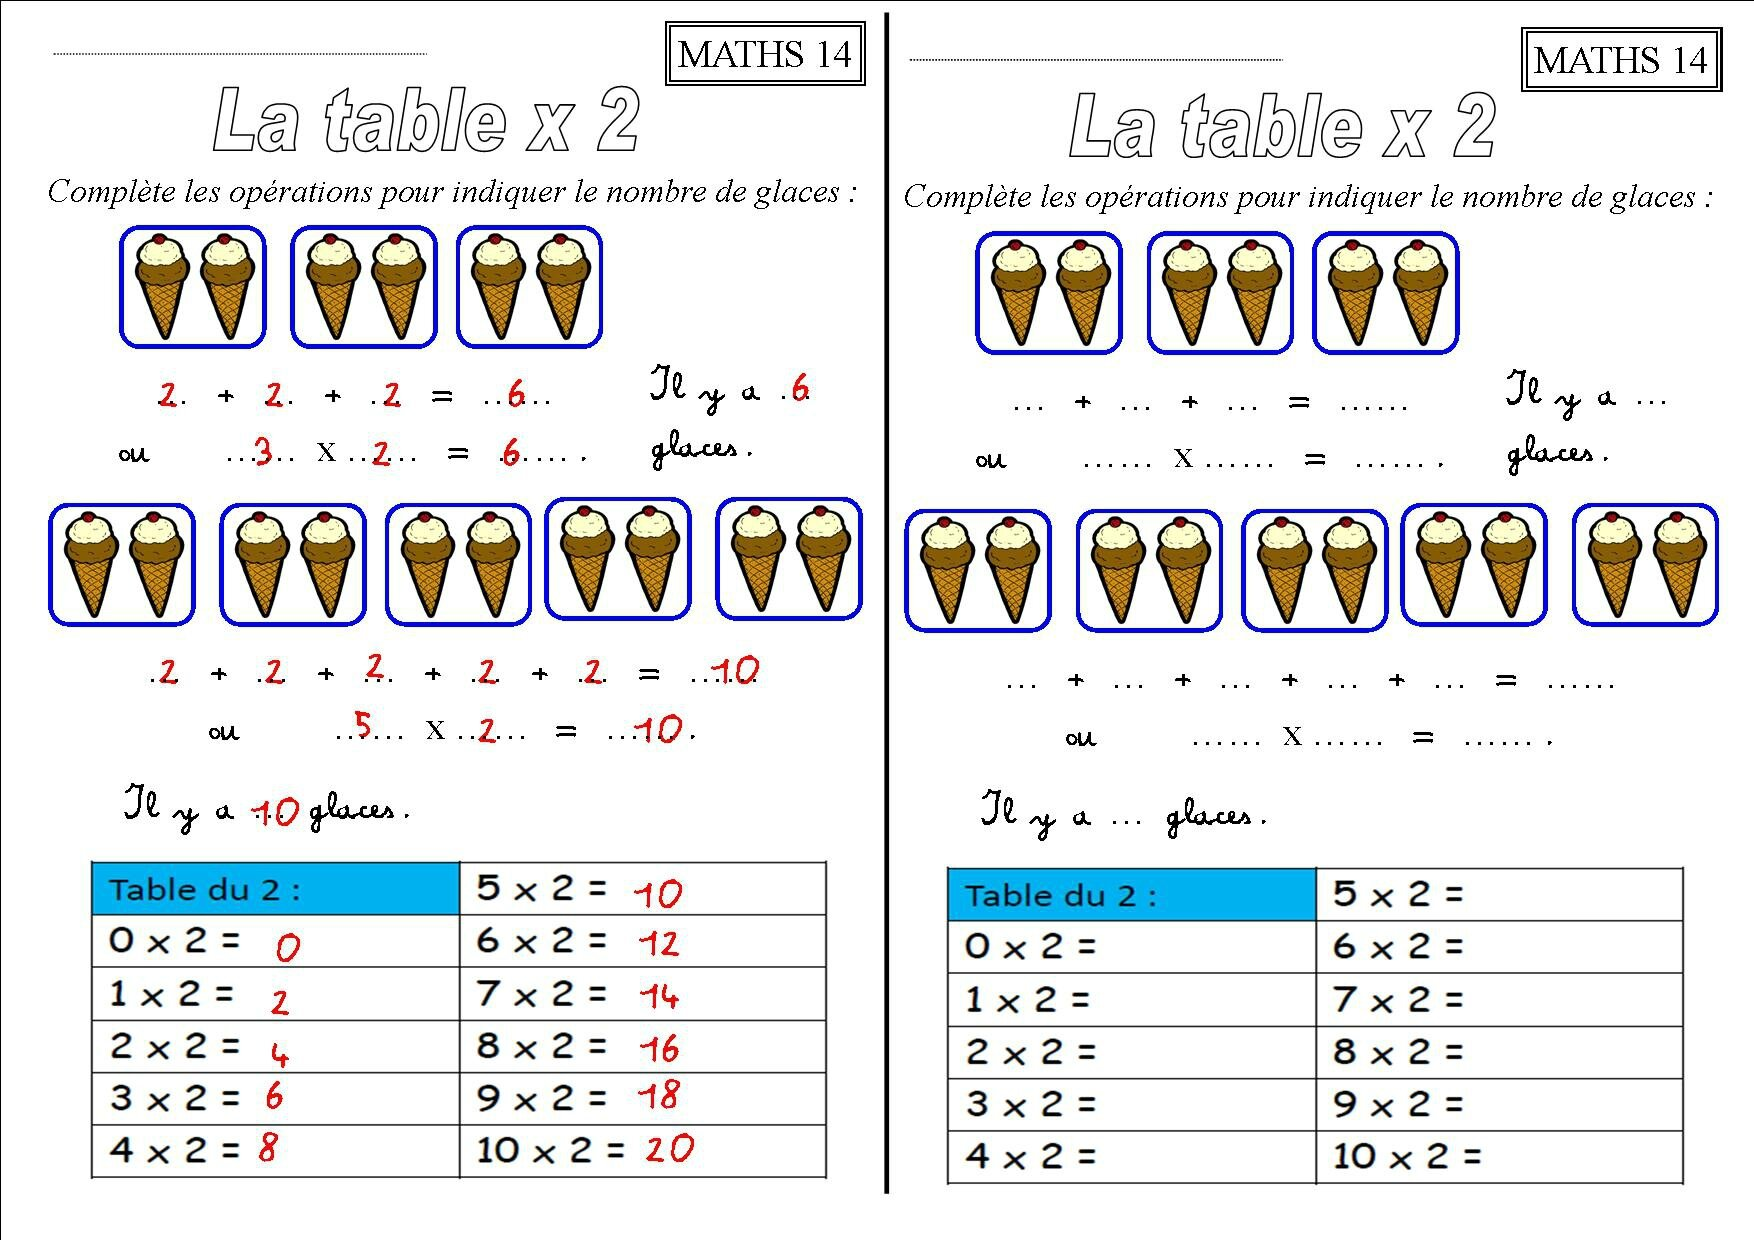 Les tables de multiplication ce1 x 2 x 3 x 4 x 5 x 10 la classe des ce de villebois - Exercices tables multiplication ...